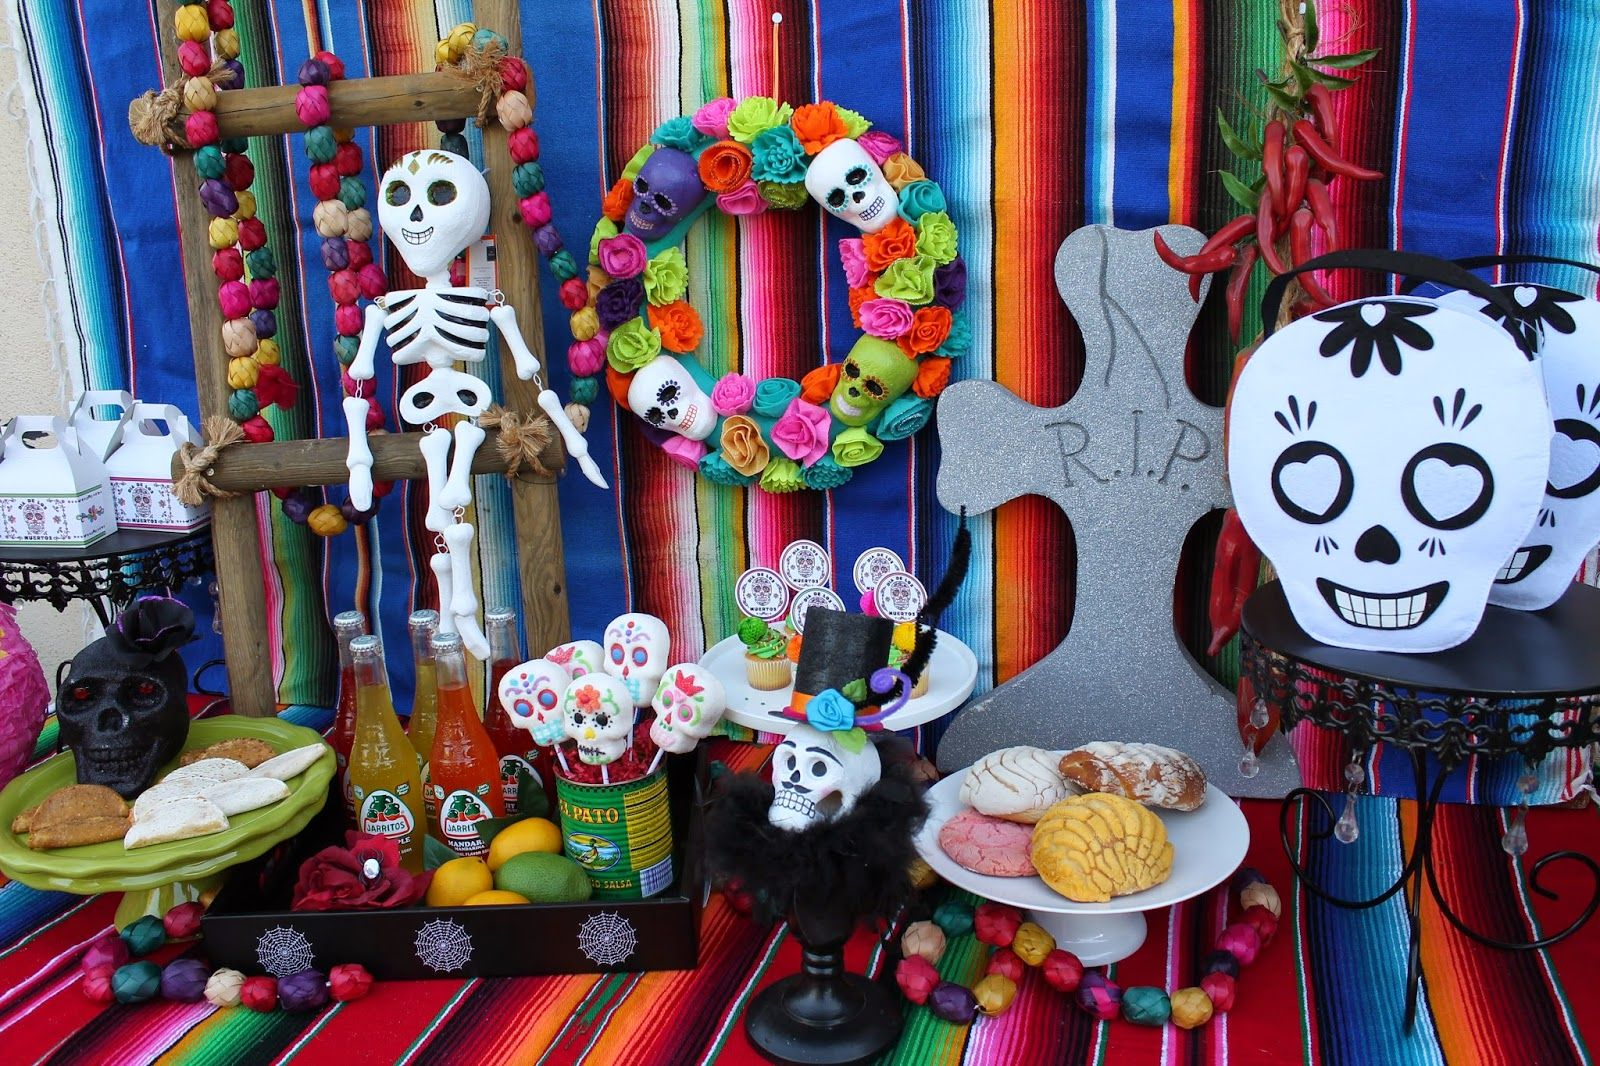 LAURA'S little PARTY: Day of the dead - party inspiration